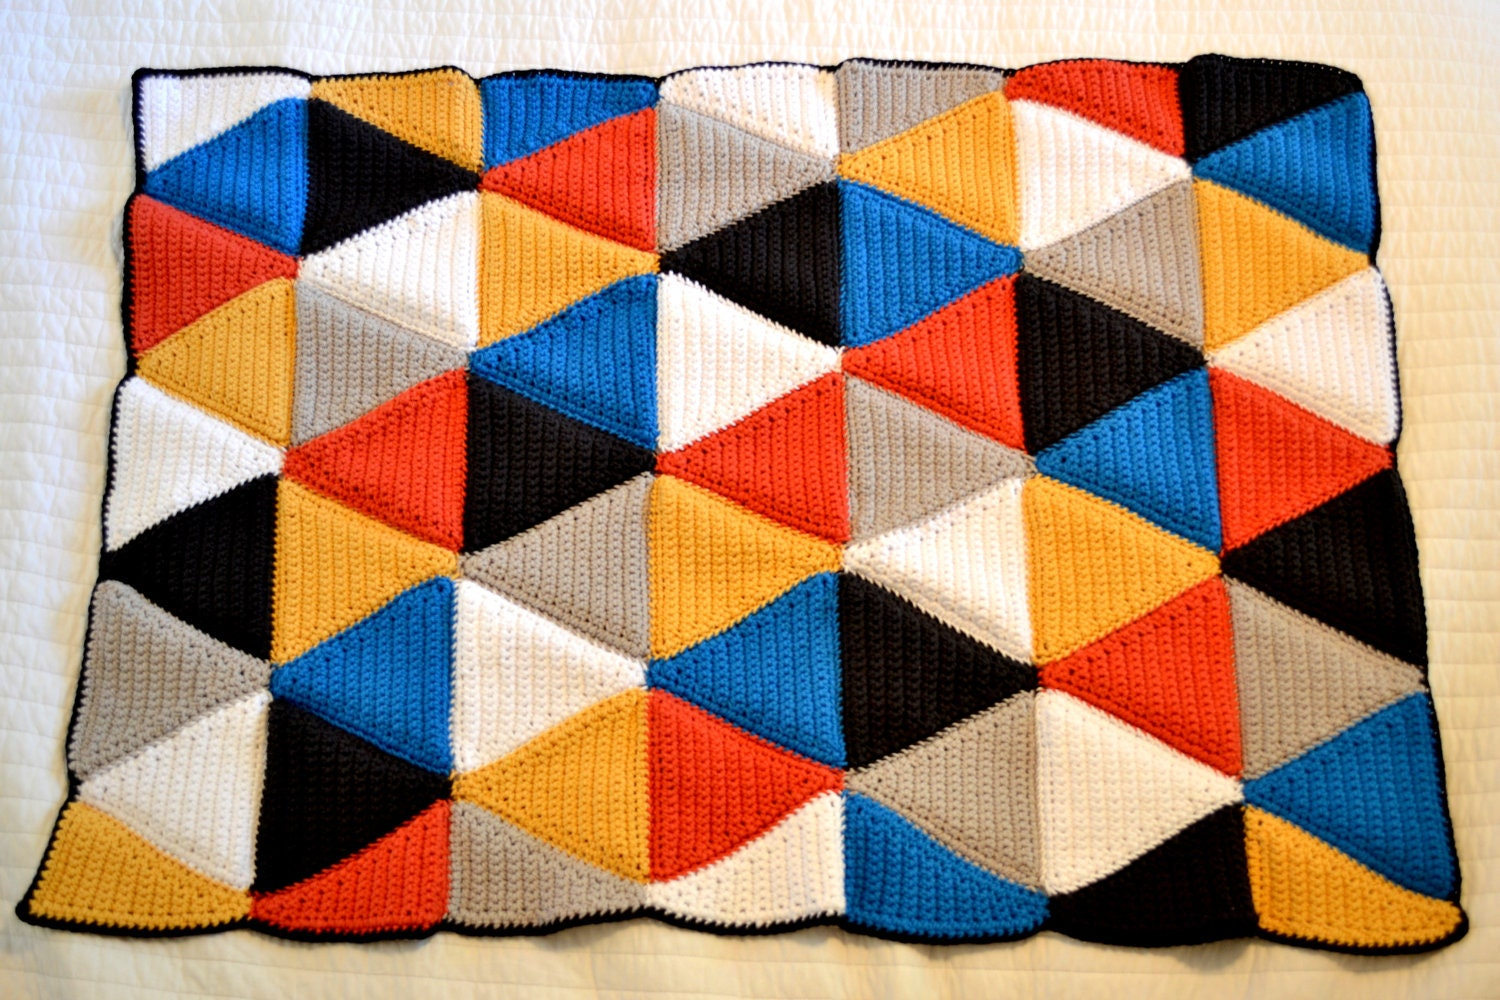 Knitted Triangle Pattern Baby Blanket : Help--a million triangles need to become a blanket. : knitting